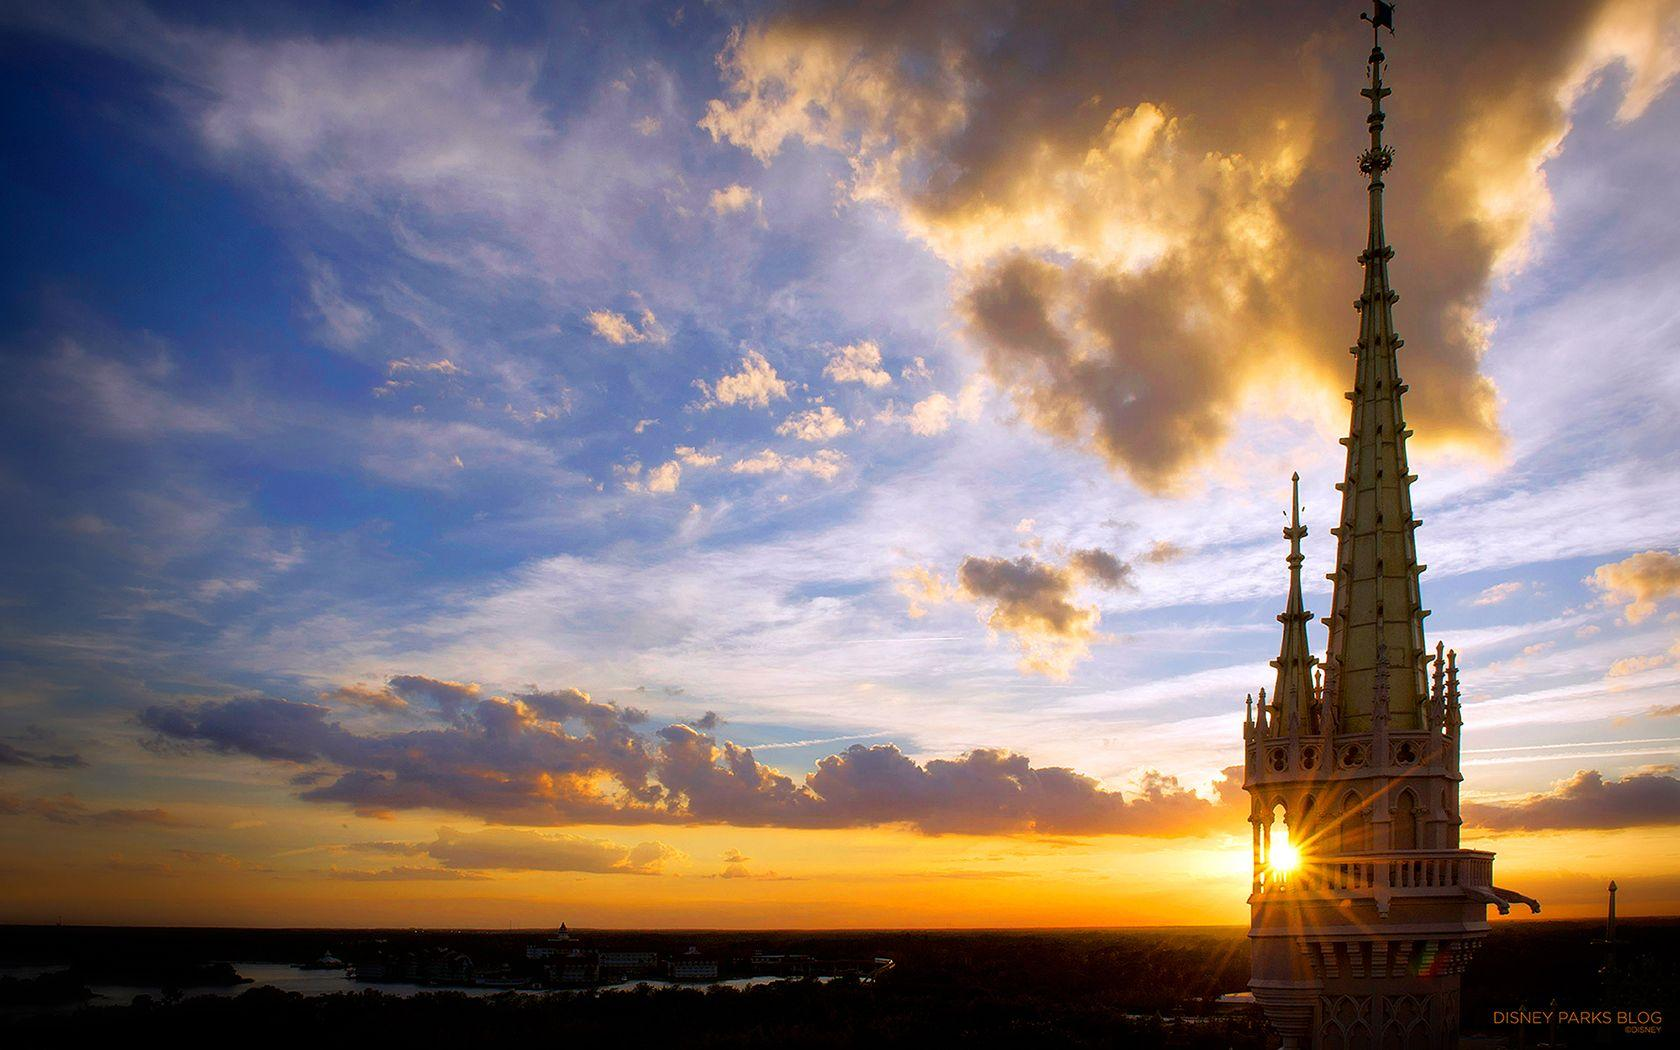 Wallpaper: Sunset at Walt Disney World Resort | Disney Parks Blog